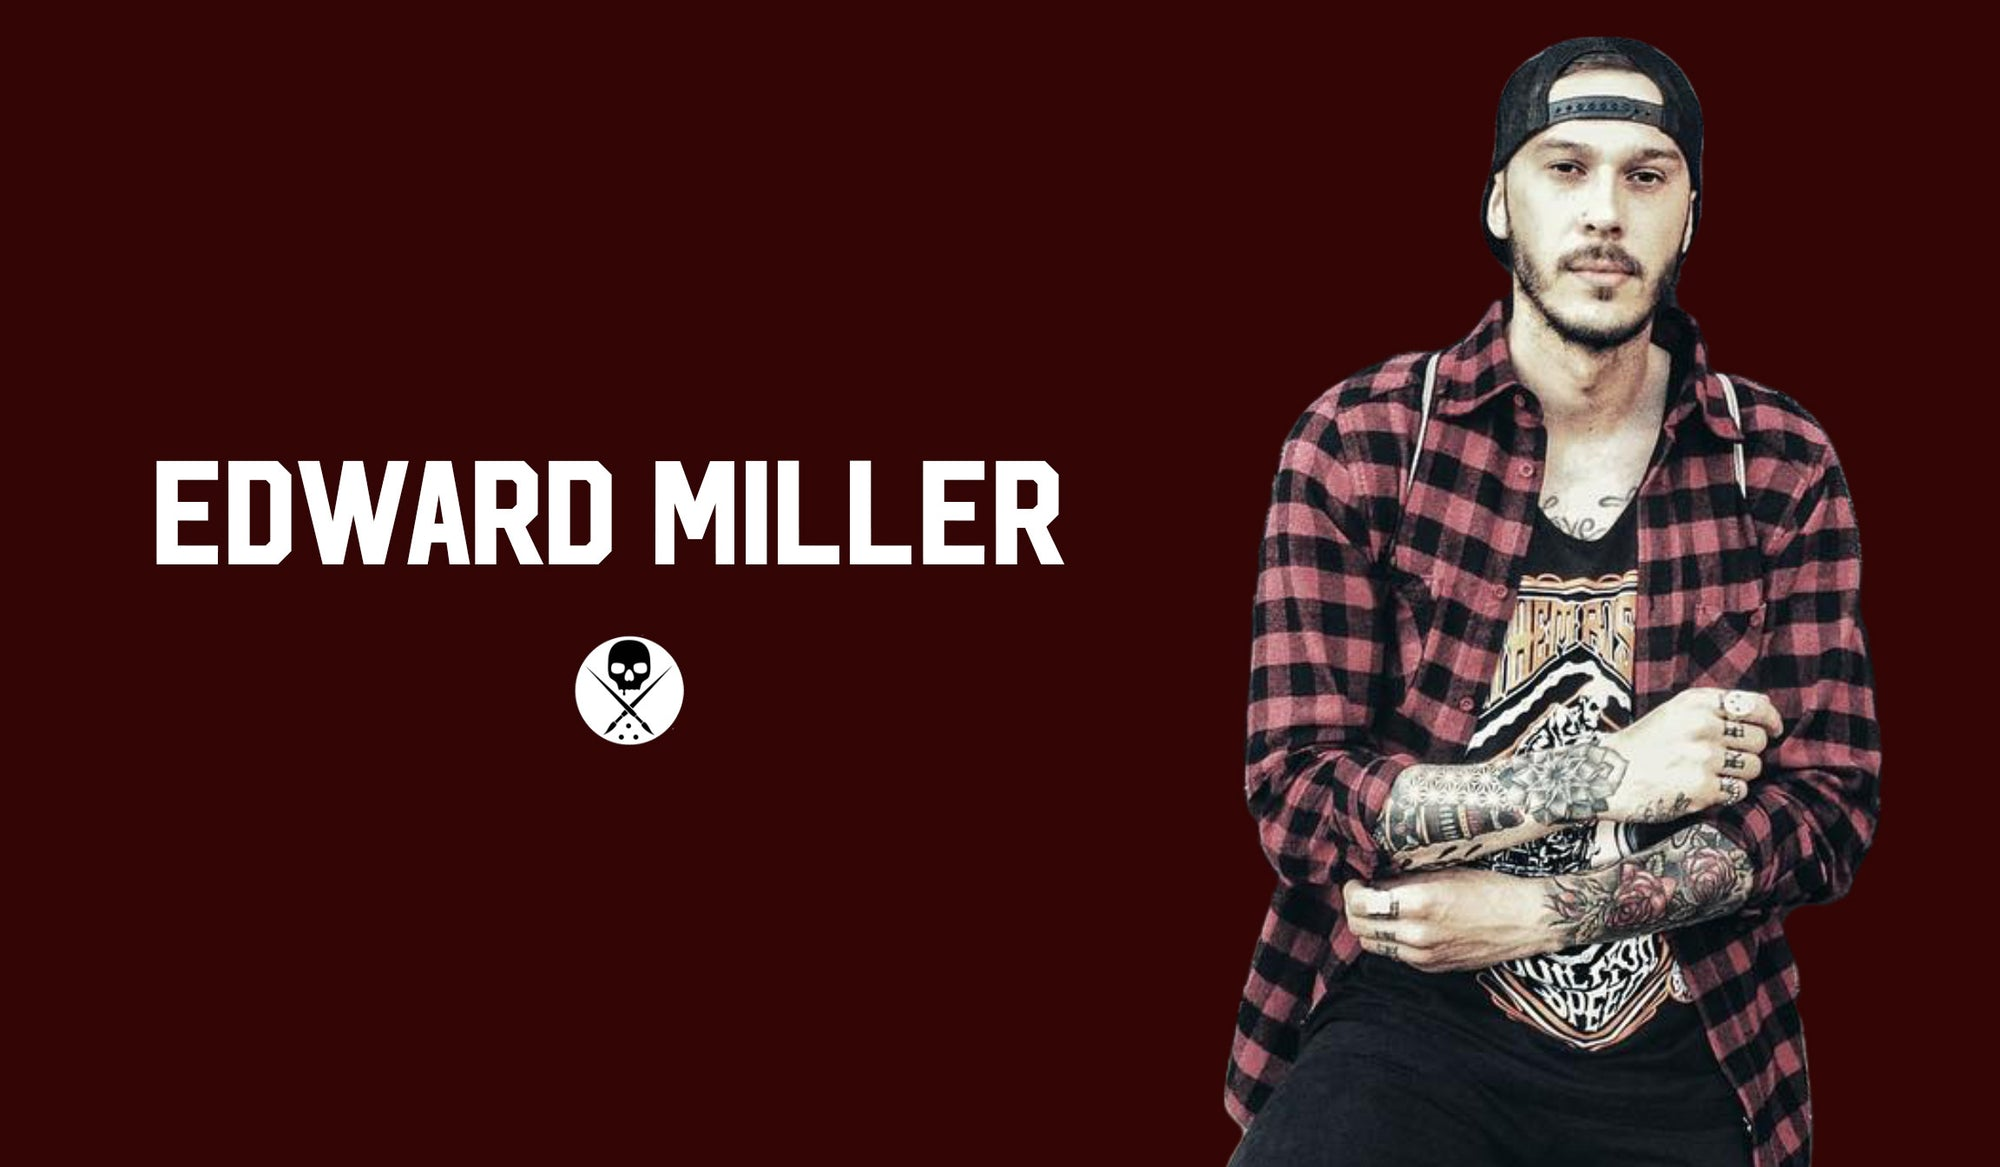 Edward Miller - Tattoo Artist Shirt Series